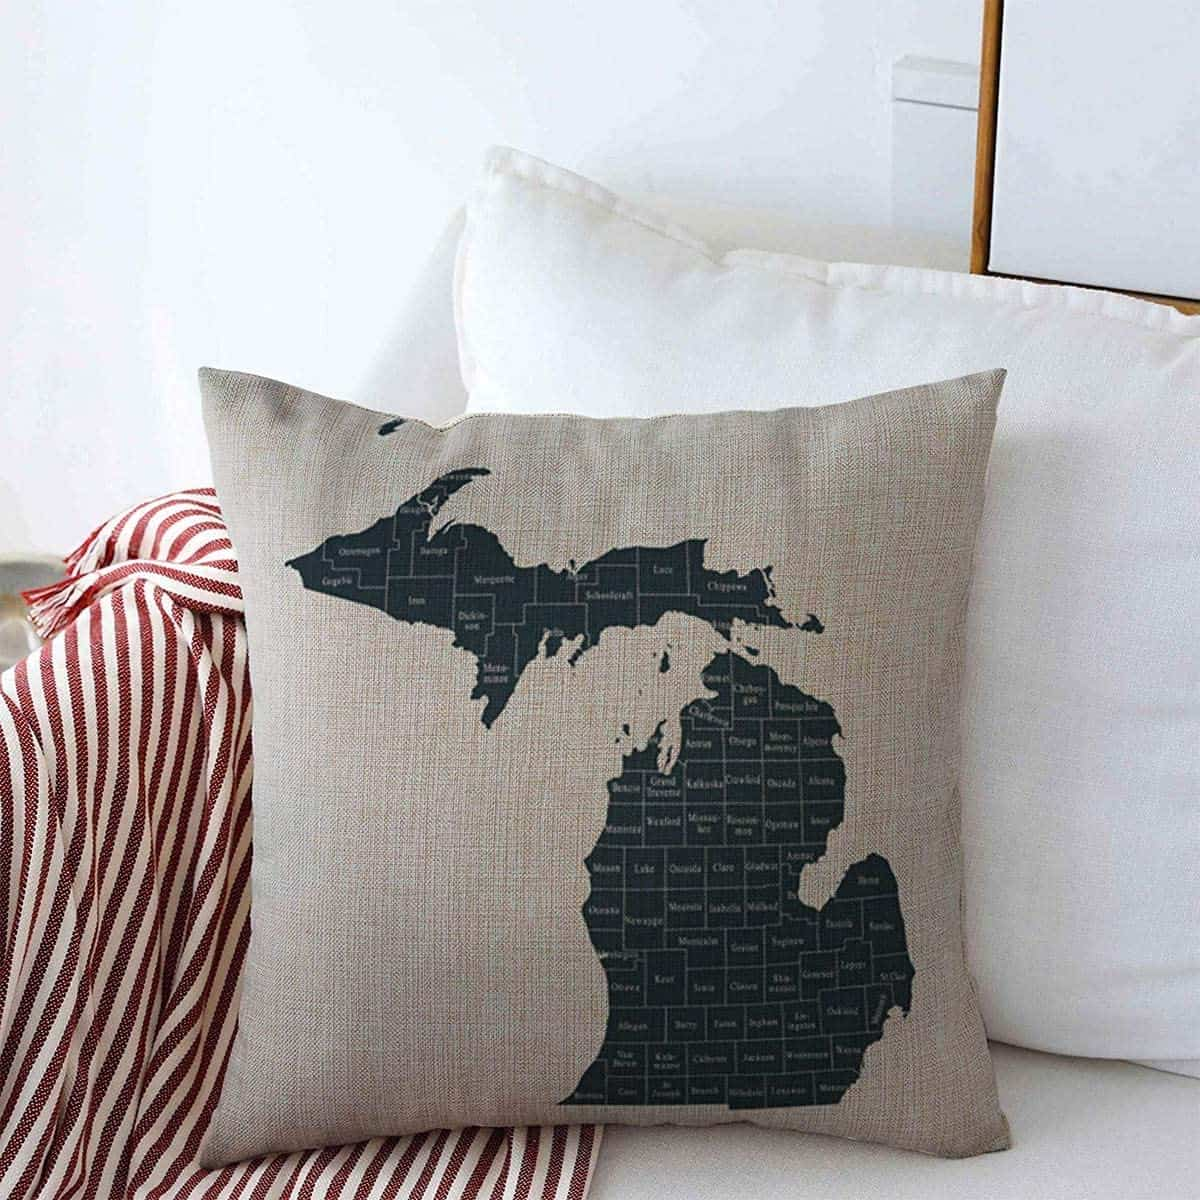 Michigan Counties Throw Pillow - an ultimate michigan gift idea